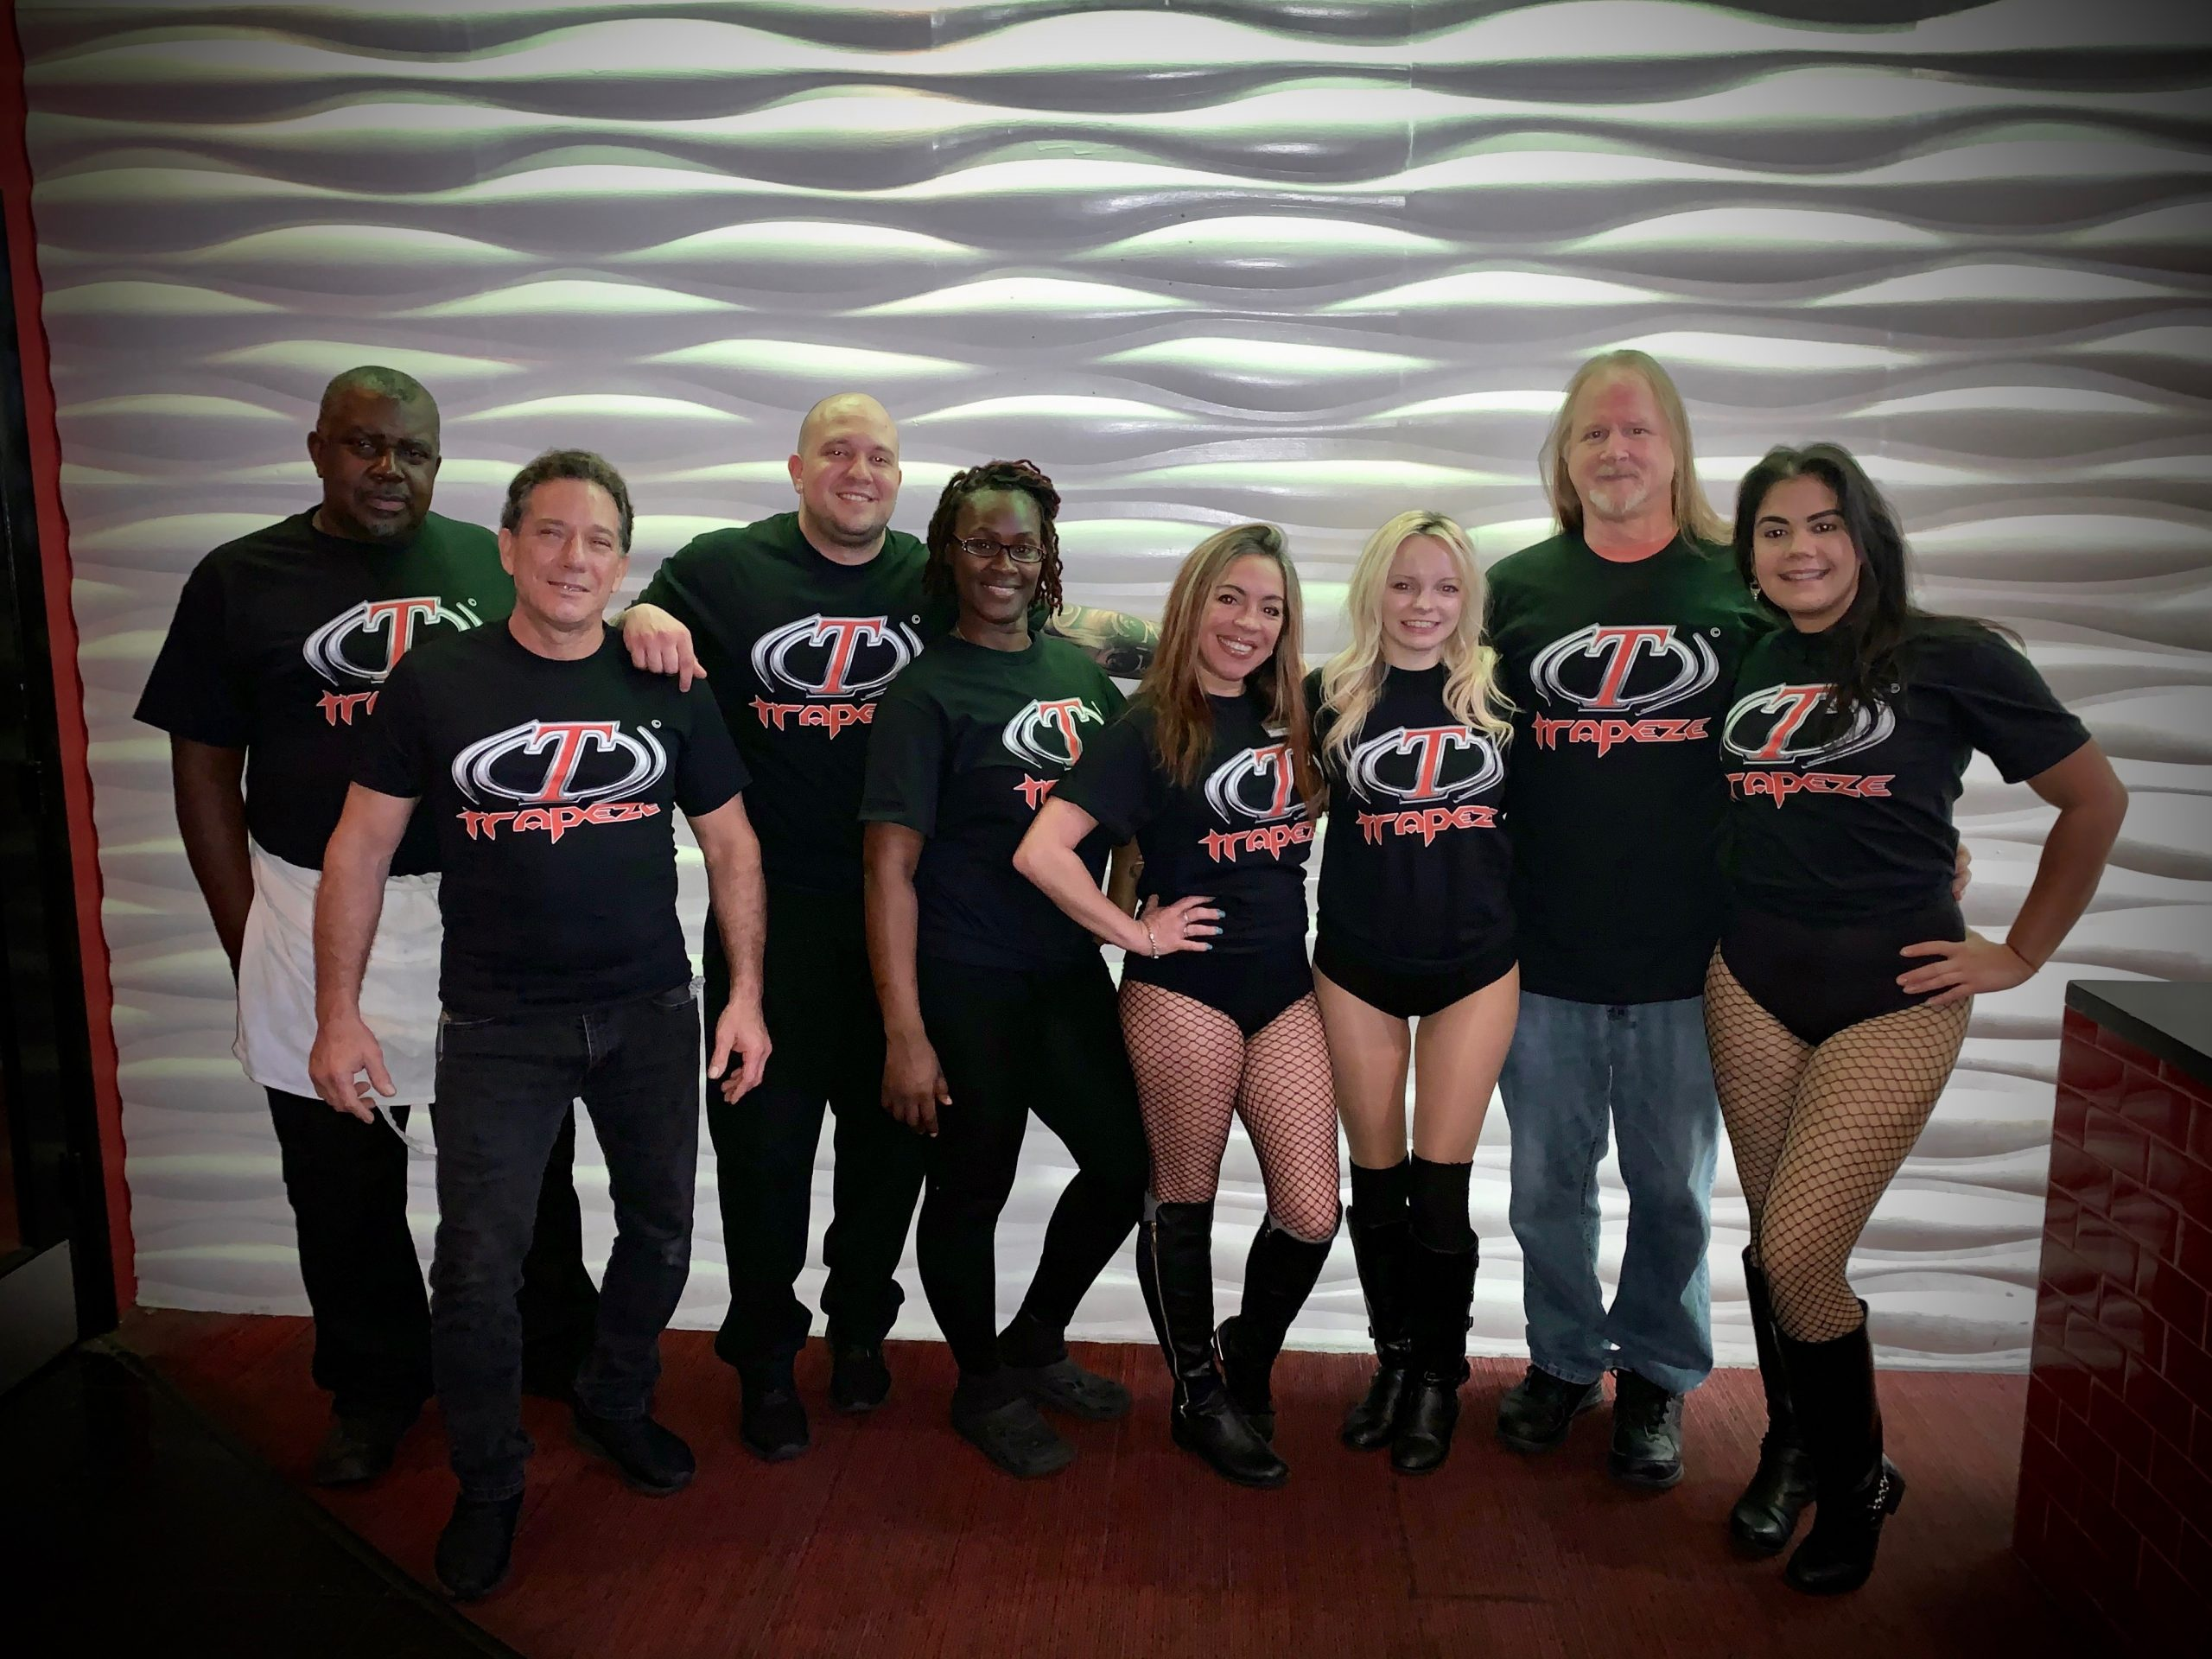 Trapeze Club South Florida Staff standing together smiling